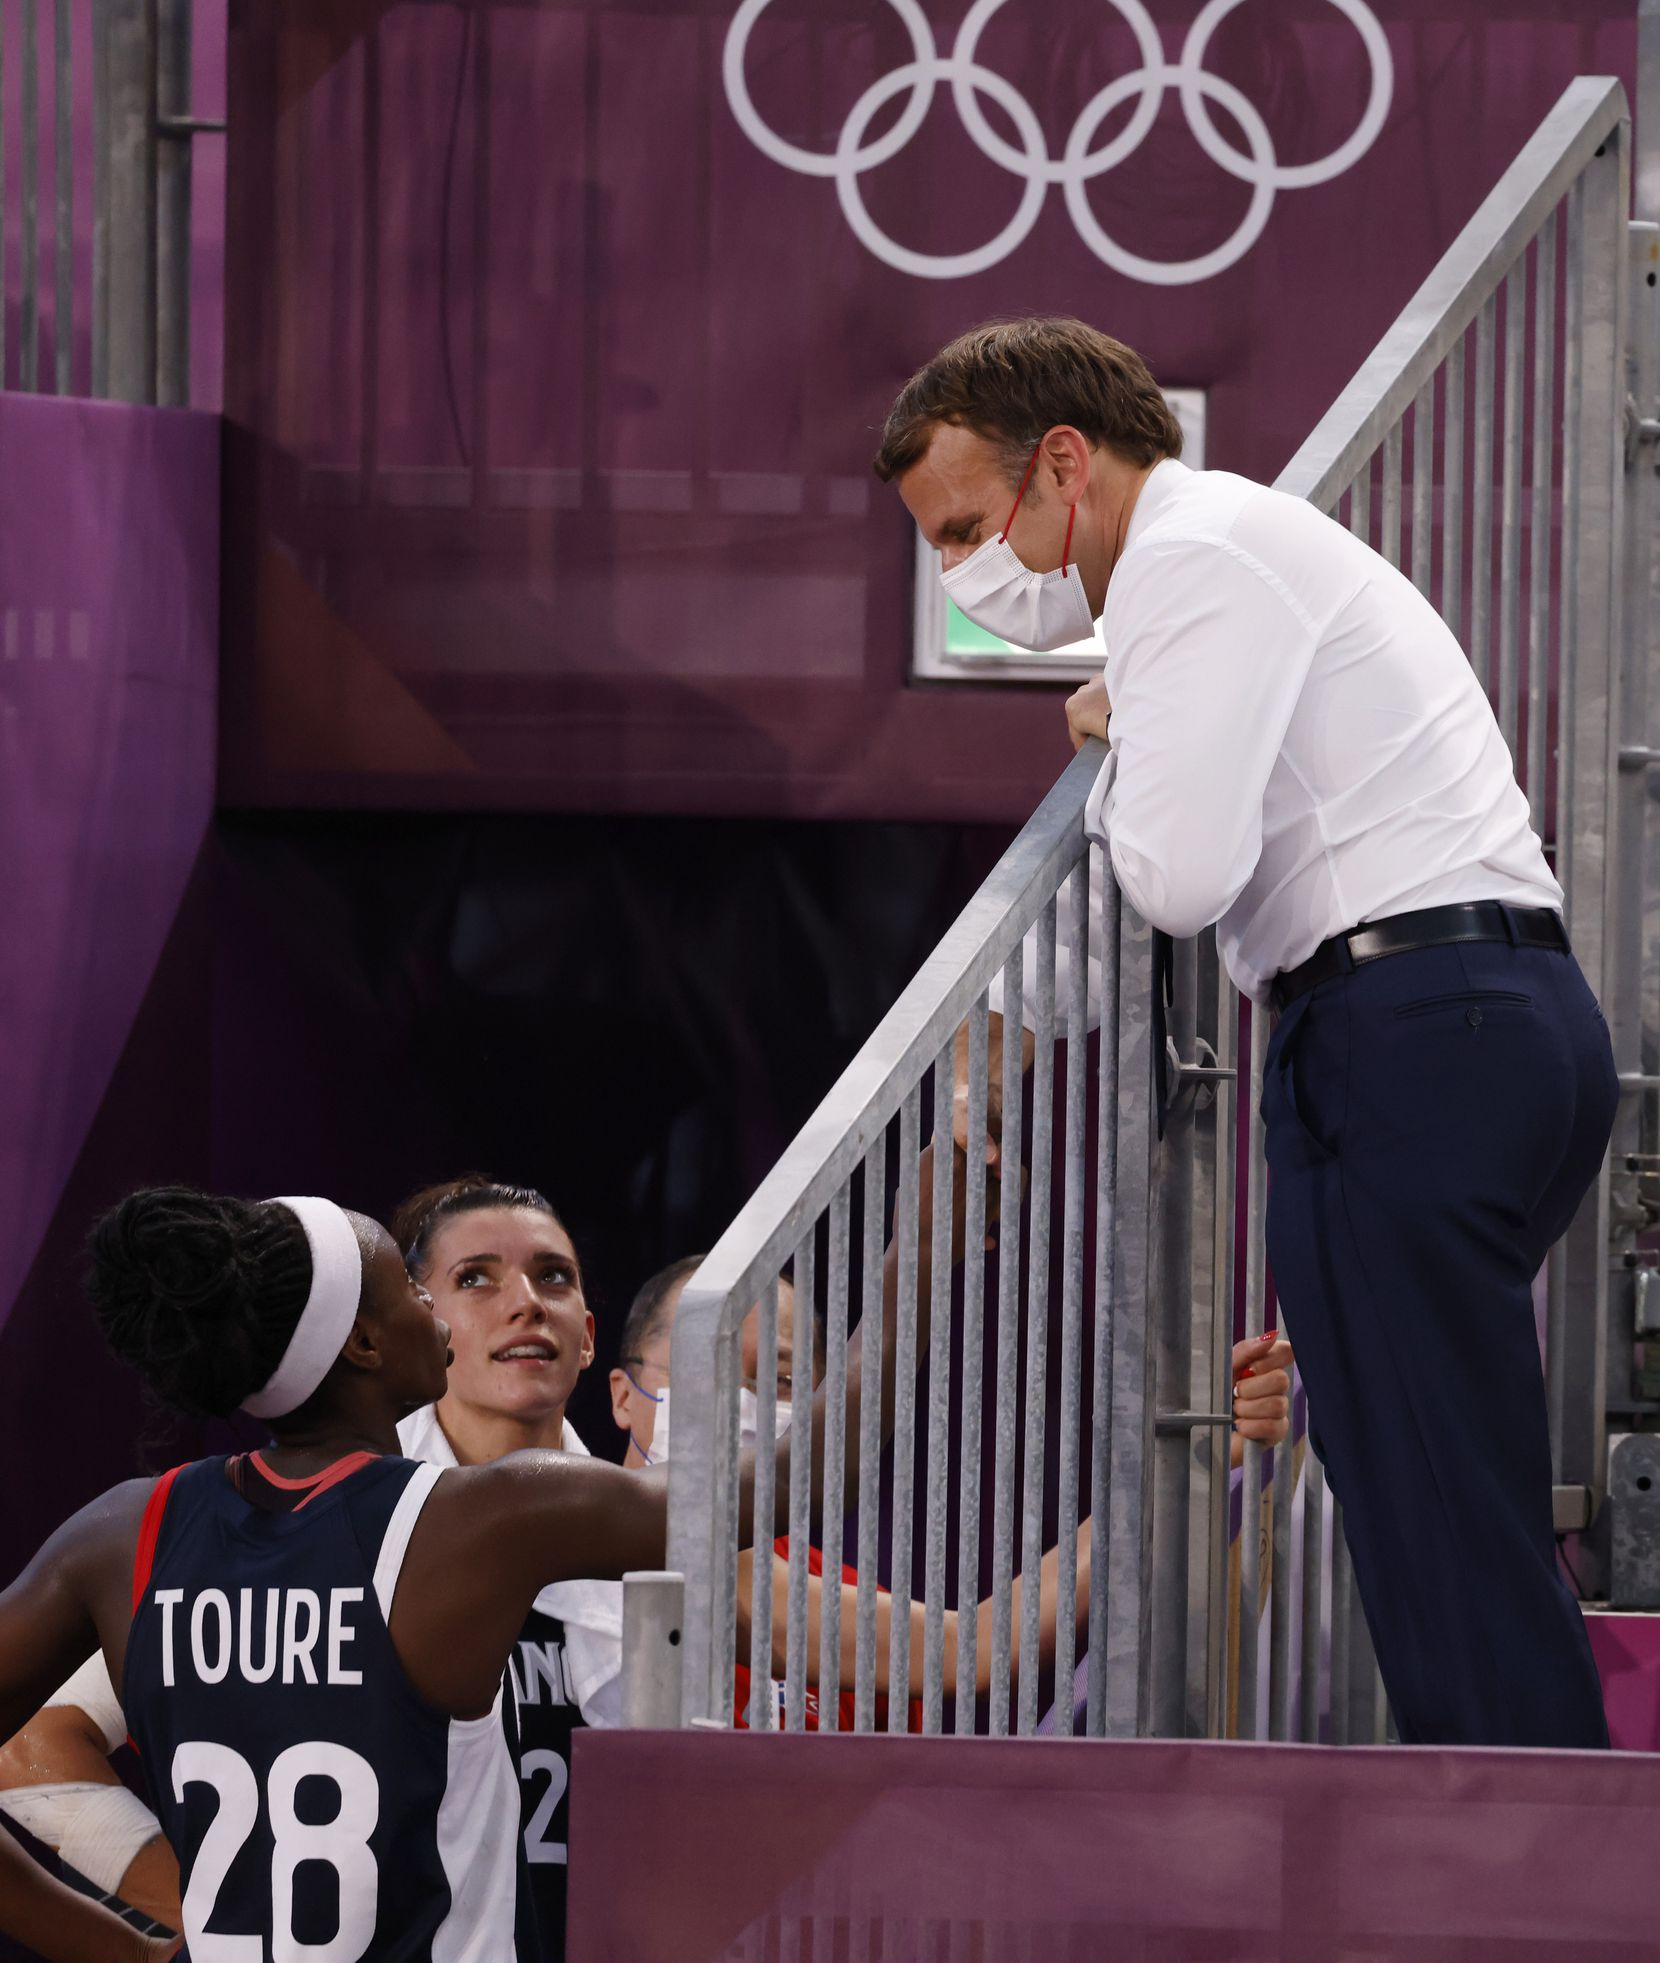 French President Emmanuel Macron talks to players from France after they lost to USA 17-10 in a 3x3 women's basketball game during the postponed 2020 Tokyo Olympics at Aomi Urban Sports Park on Saturday, July 24, 2021, in Tokyo, Japan. (Vernon Bryant/The Dallas Morning News)